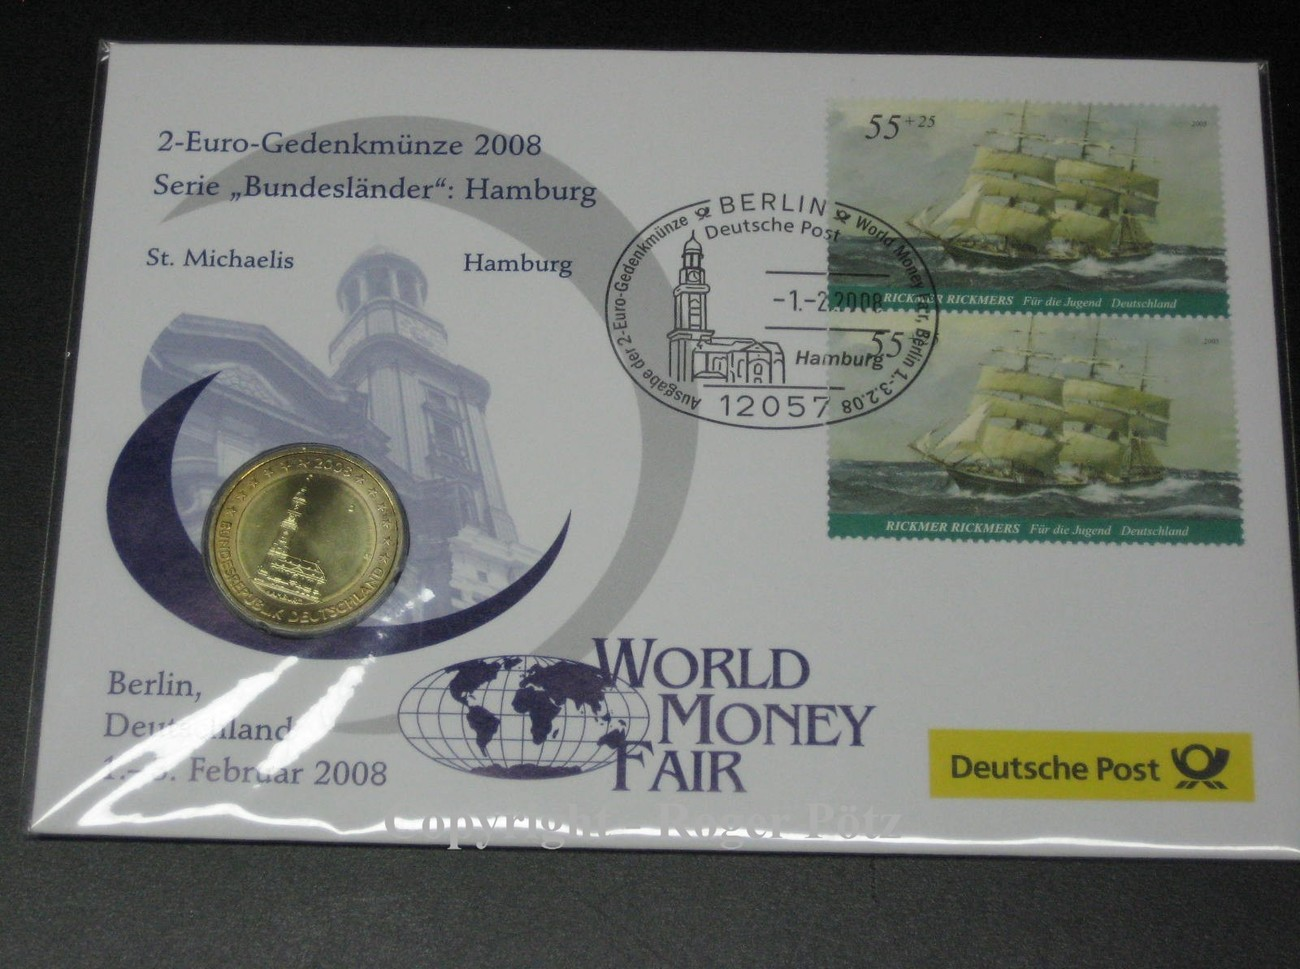 2 Euro 2008 Brd 2 Euro 2008 Hamburger Michel J Im Numisbrief World